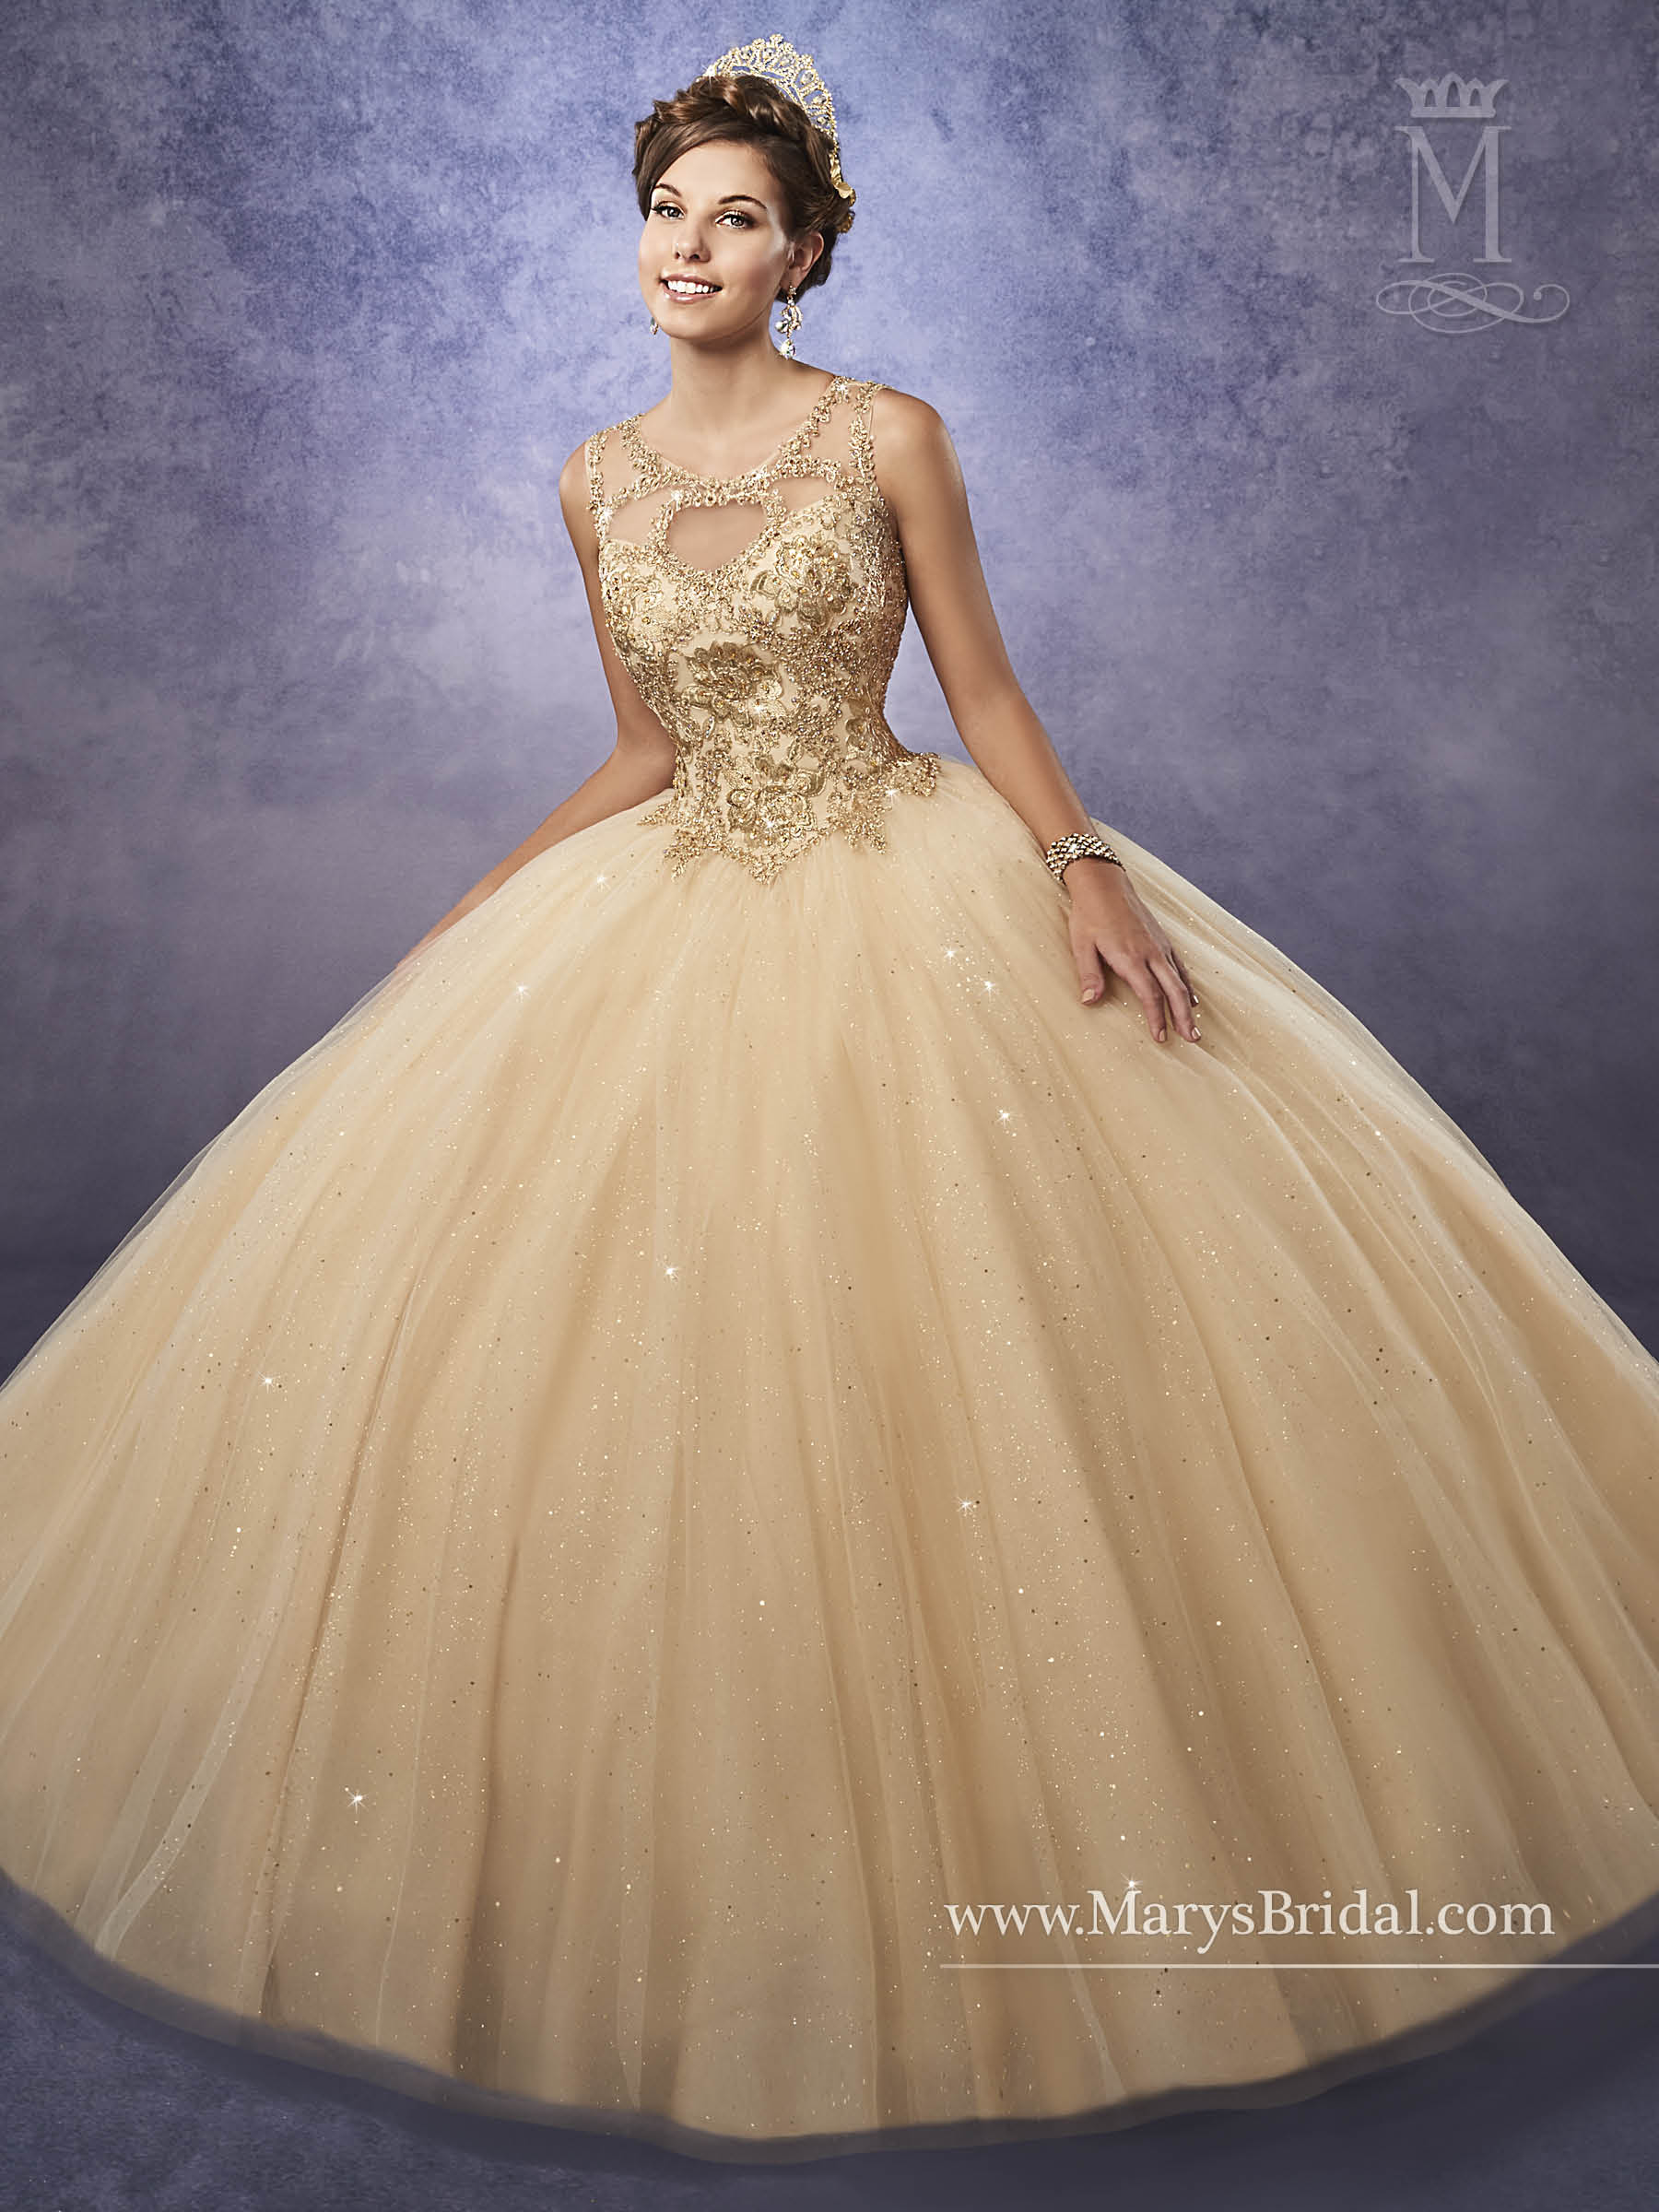 Marys Bridal 4q496 Quinceanera Dress Madamebridal Com